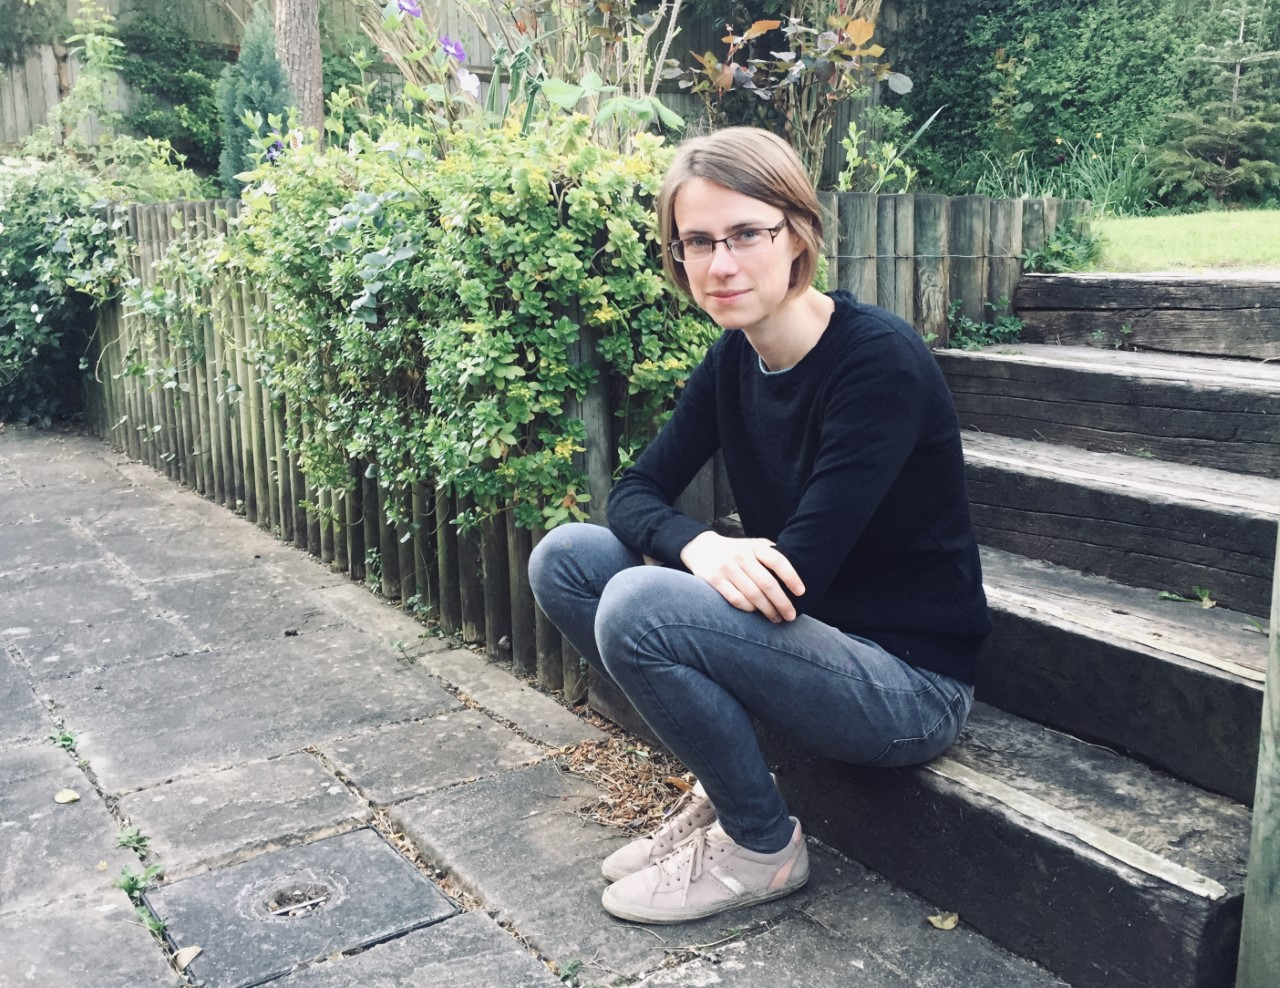 A woman with short dark blonde hair wearing glasses, a blue jumper and blue jeans sitting on some steps looking at the camera.